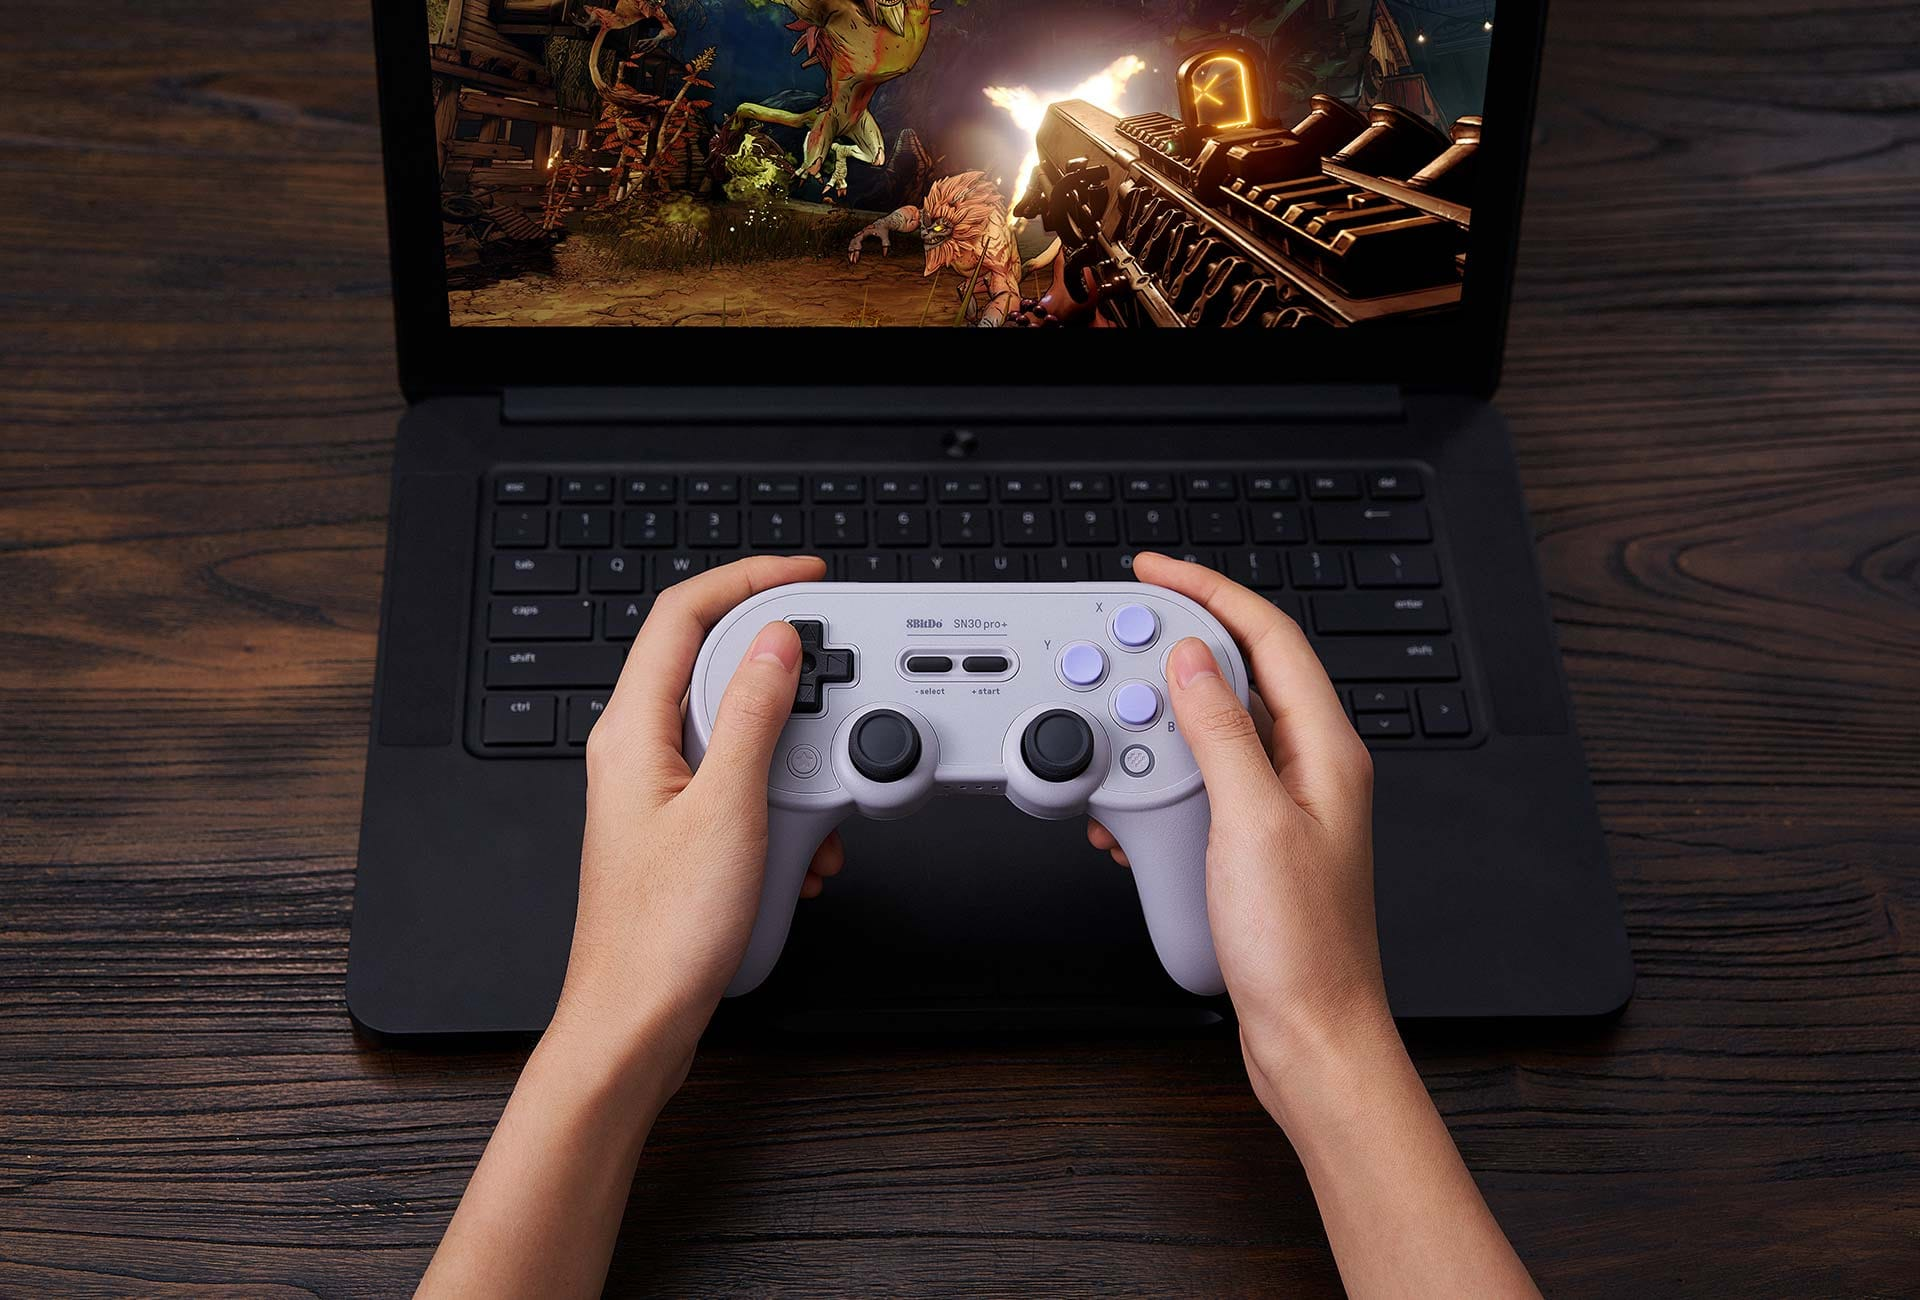 8Bitdo SN30 Pro+ Pro+ is the most advanced controller from 8BitDo. The SN30 Pro+ series aren't just some of the best full-sized wireless Bluetooth game controllers - they were designed with respect for the classics. Pro+ can be used wired or wirelessly so you have instant access to the lowest latency possible for pro level gaming. Customize everything on Pro+ from button mapping, stick & trigger sensitivity, vibration control and even create macros with any button combination. Easily save your settings on a game by game basis with custom profiles. Compatibility: Windows, Android, iPhone, macOS, Nintendo Switch, Raspberry Pi Available in: Black, SN and G Classic.